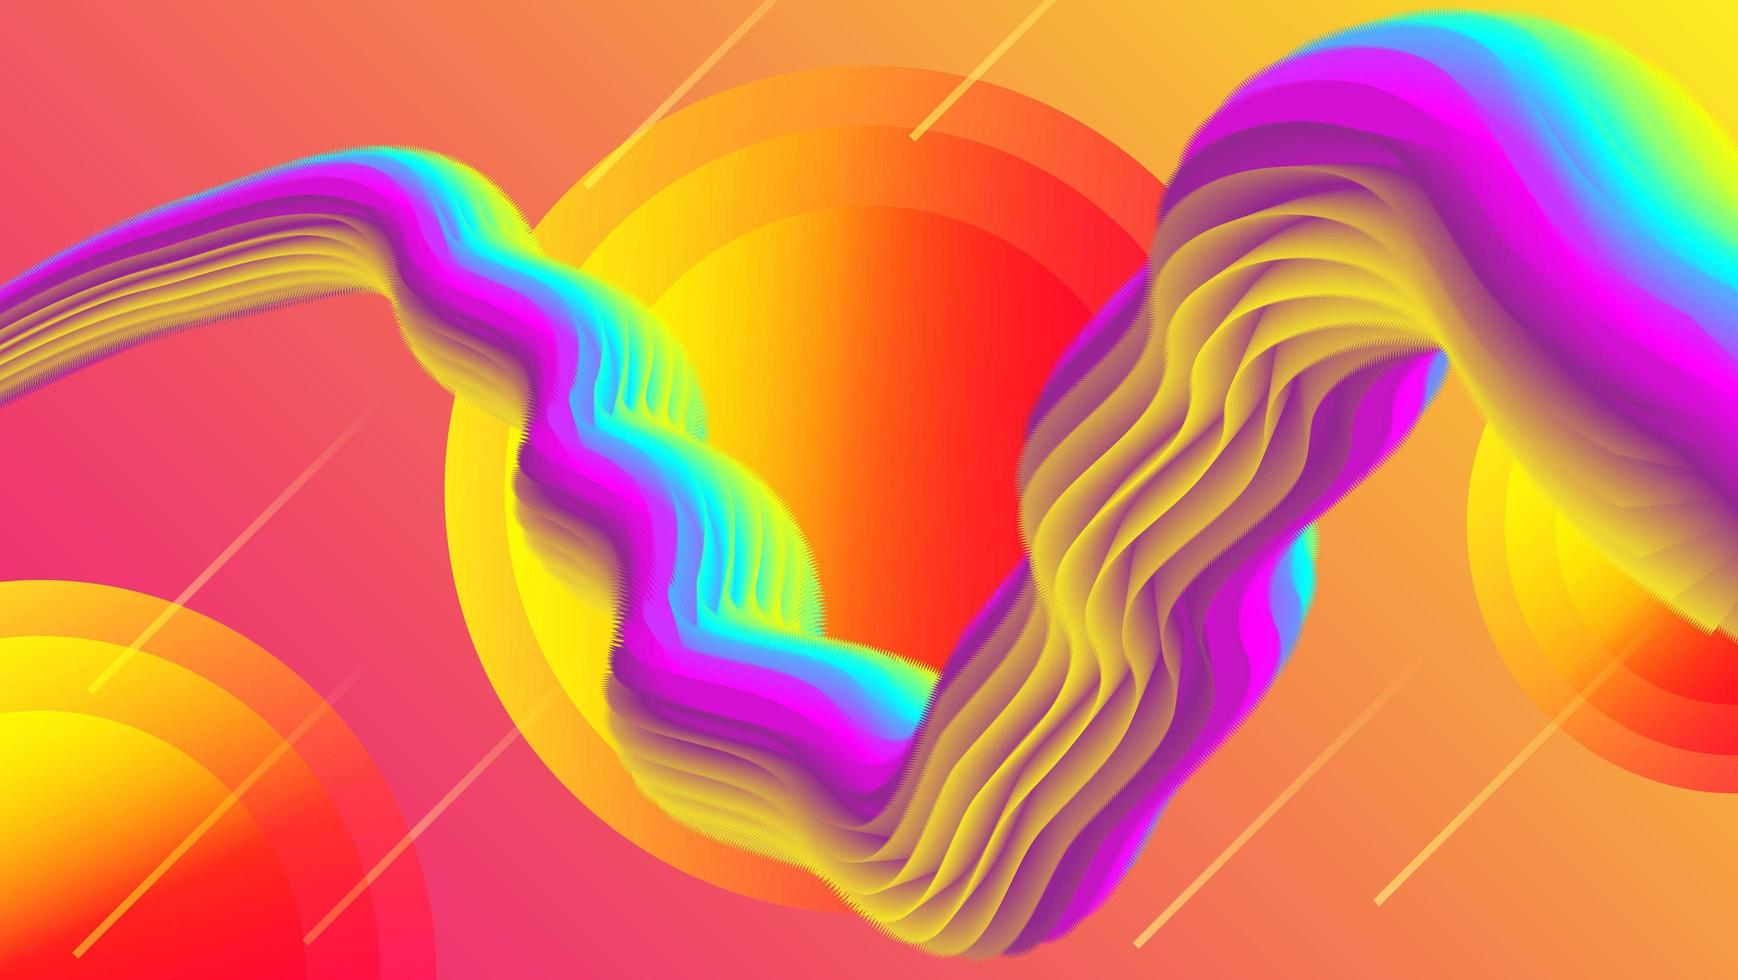 Colorful Fluid Marble Design vector